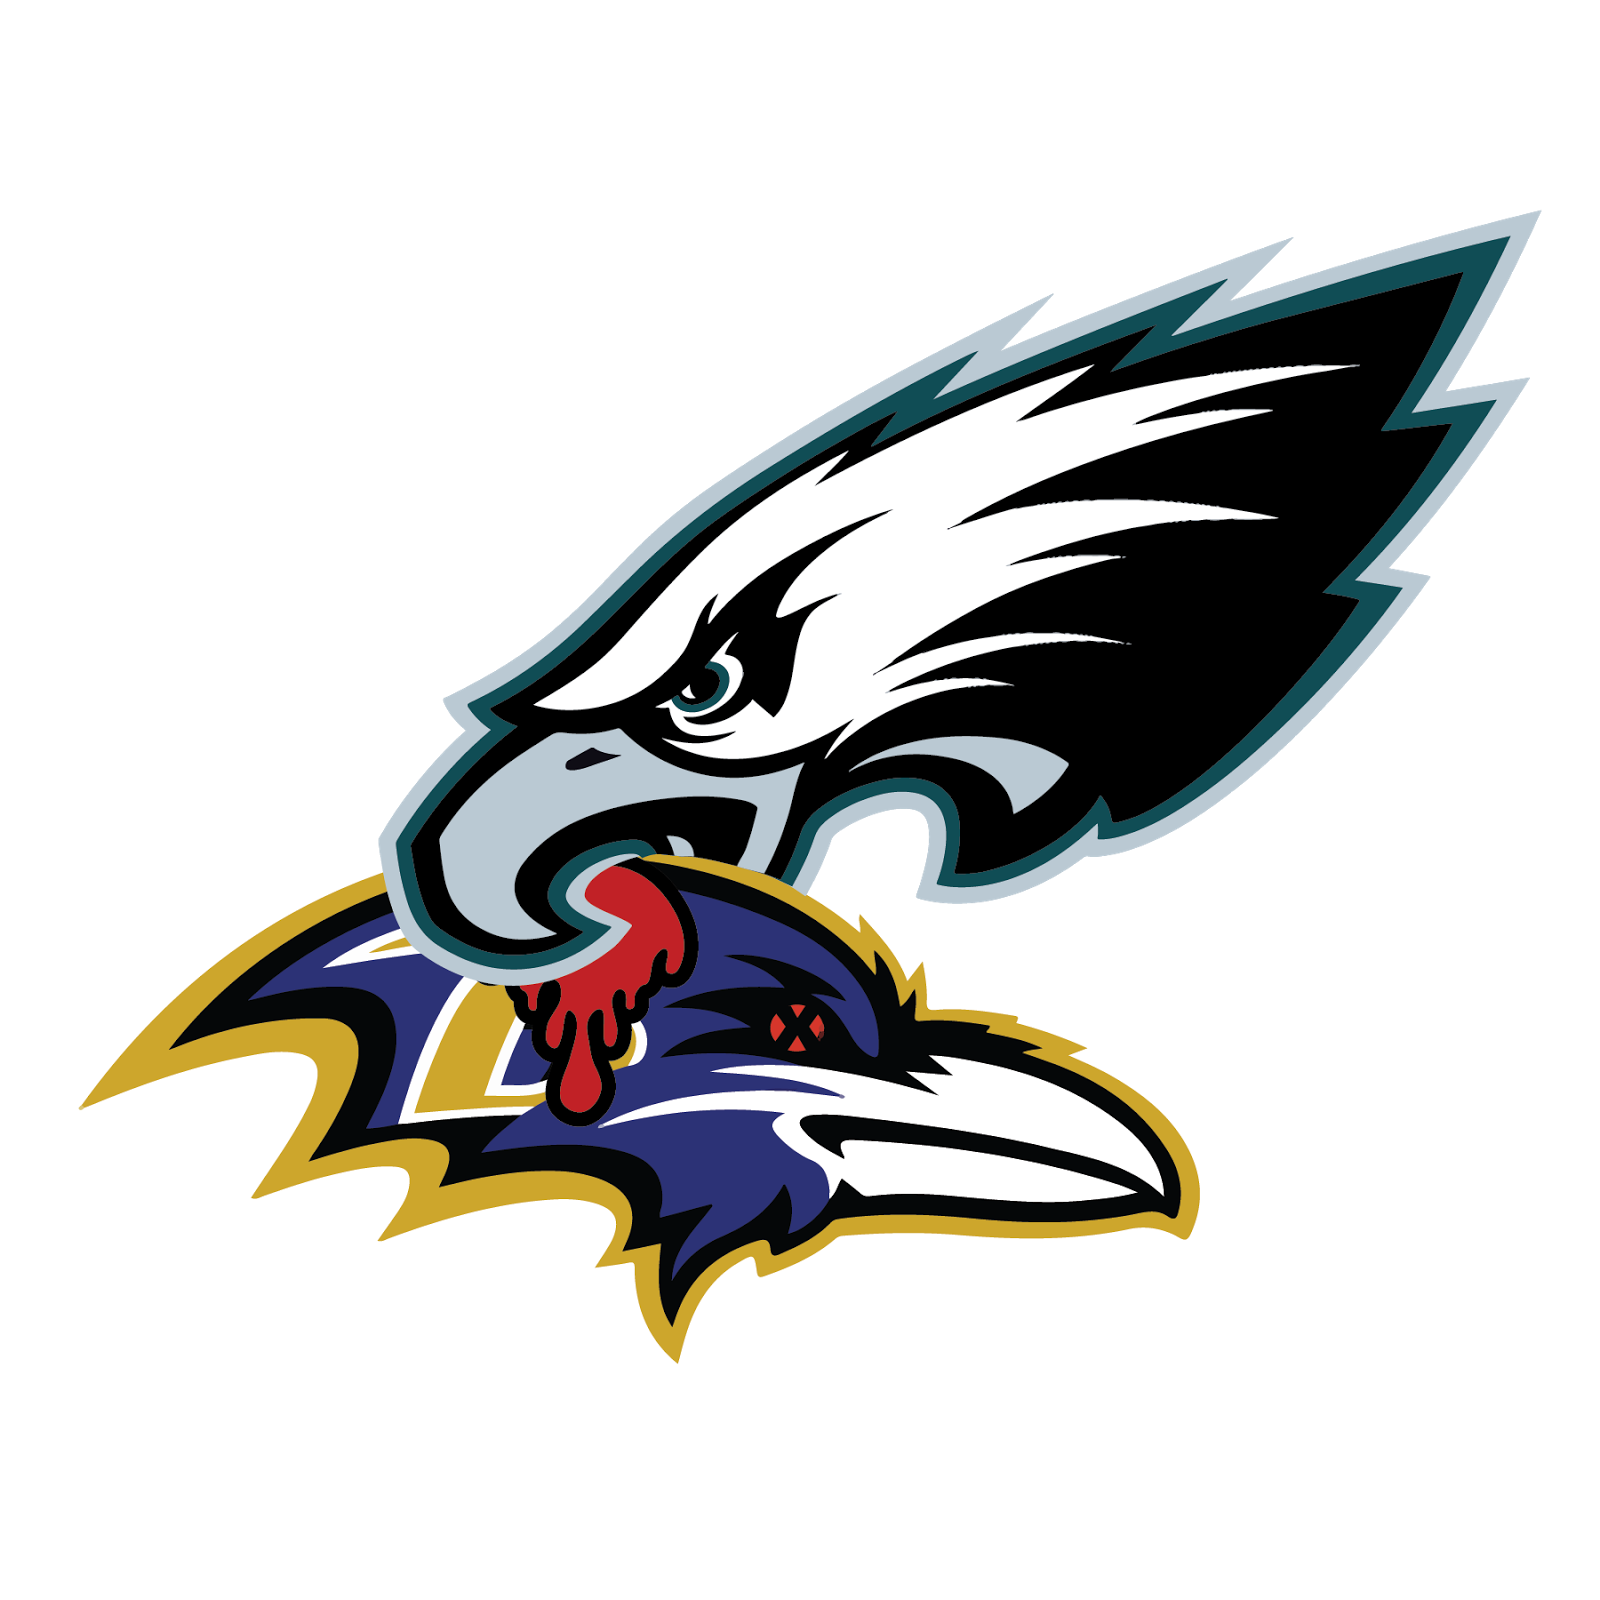 Philadelphia Eagles and Baltimore Raven, metal, logo, reimagined